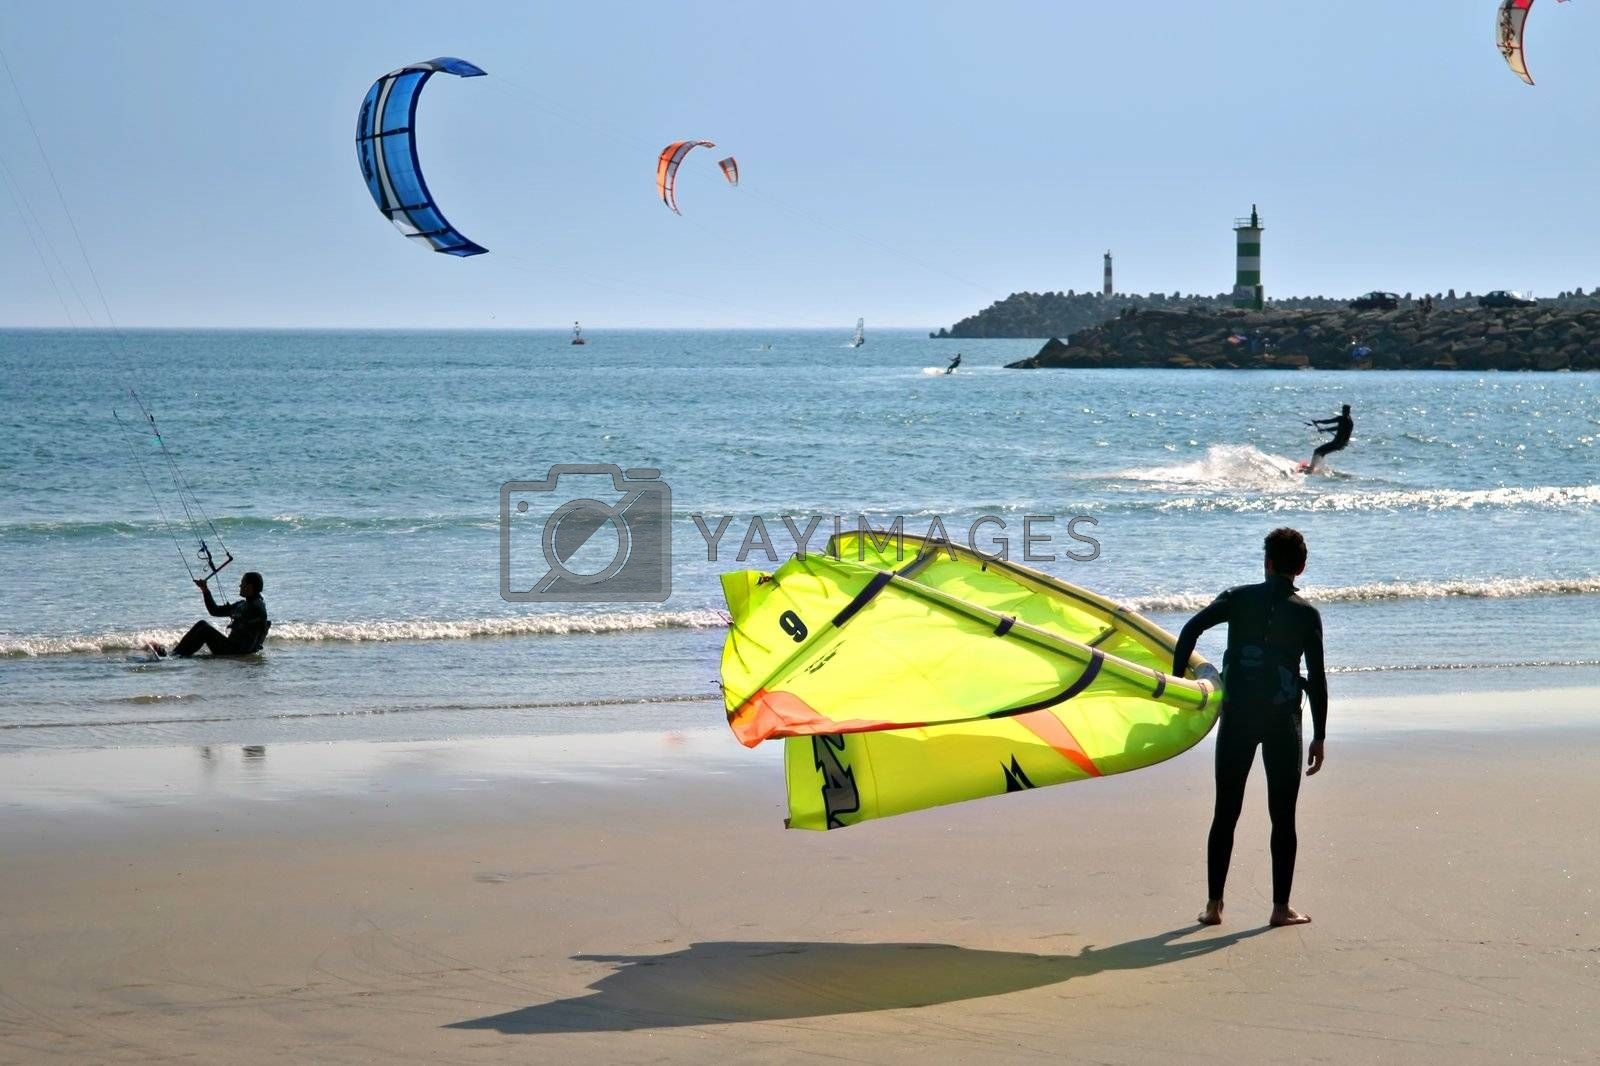 Kite Surfers at the beach